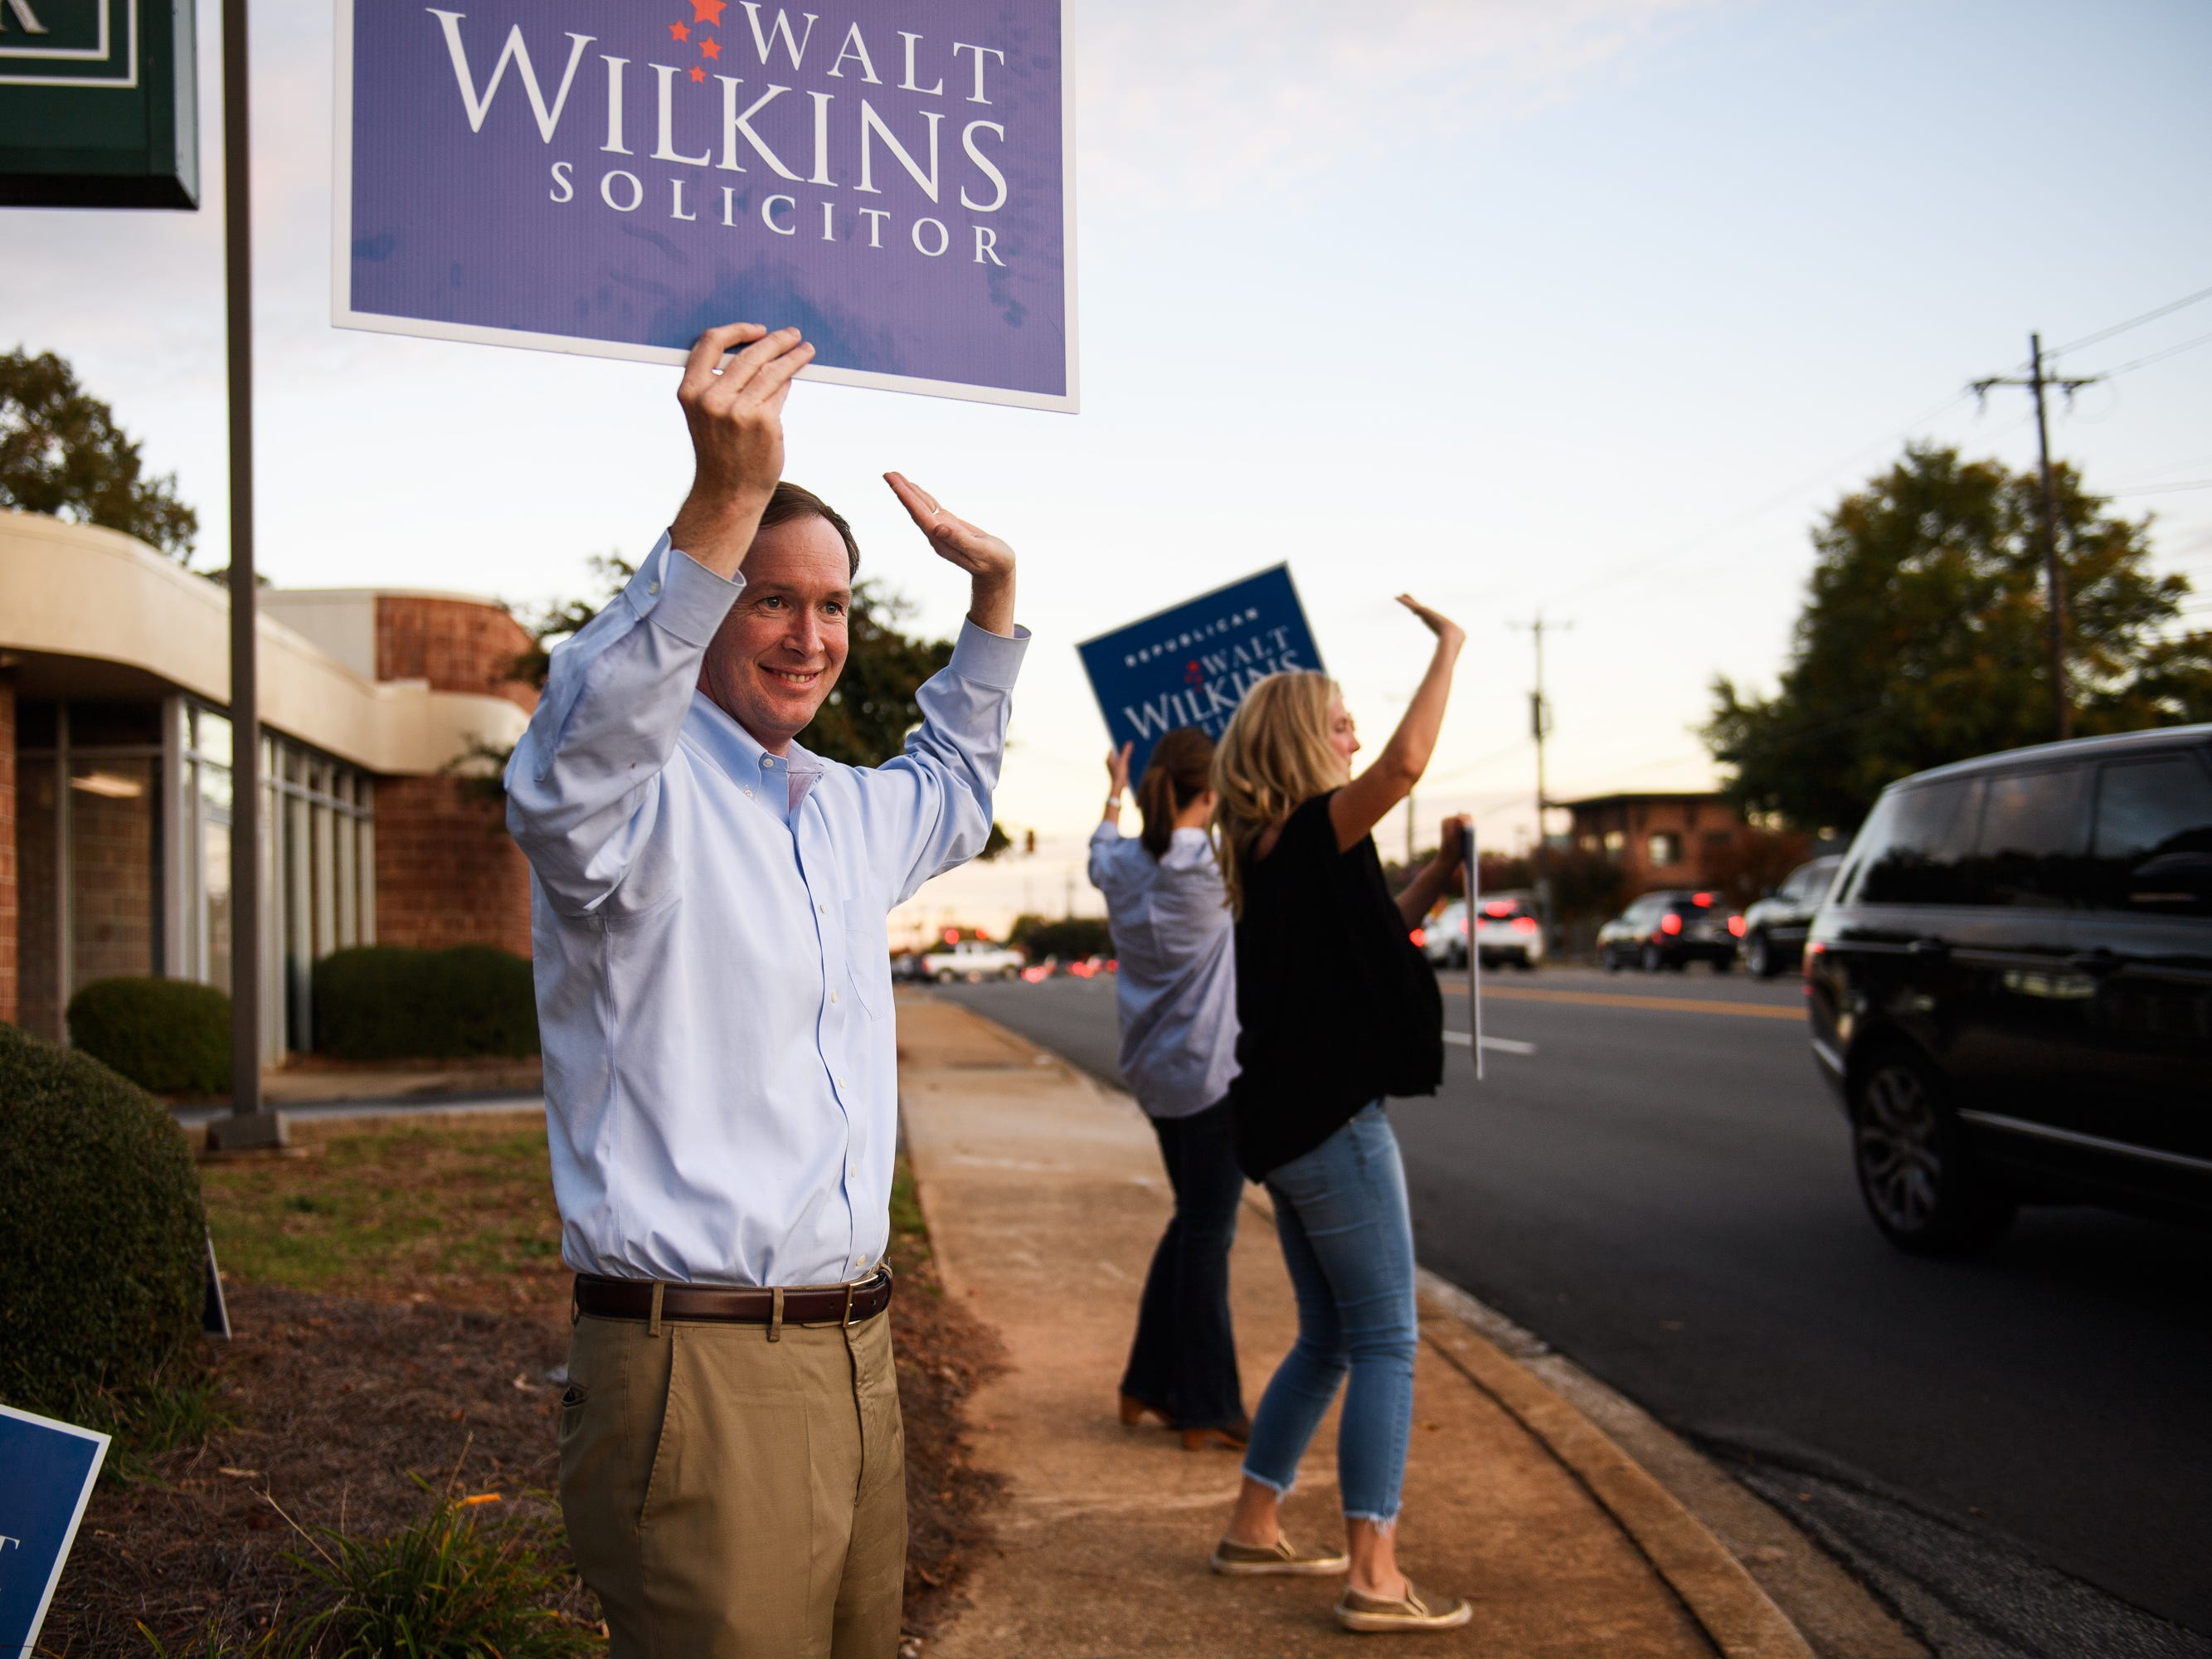 What's next for Walt Wilkins after landslide victory in 13th Circuit Solicitor's race?